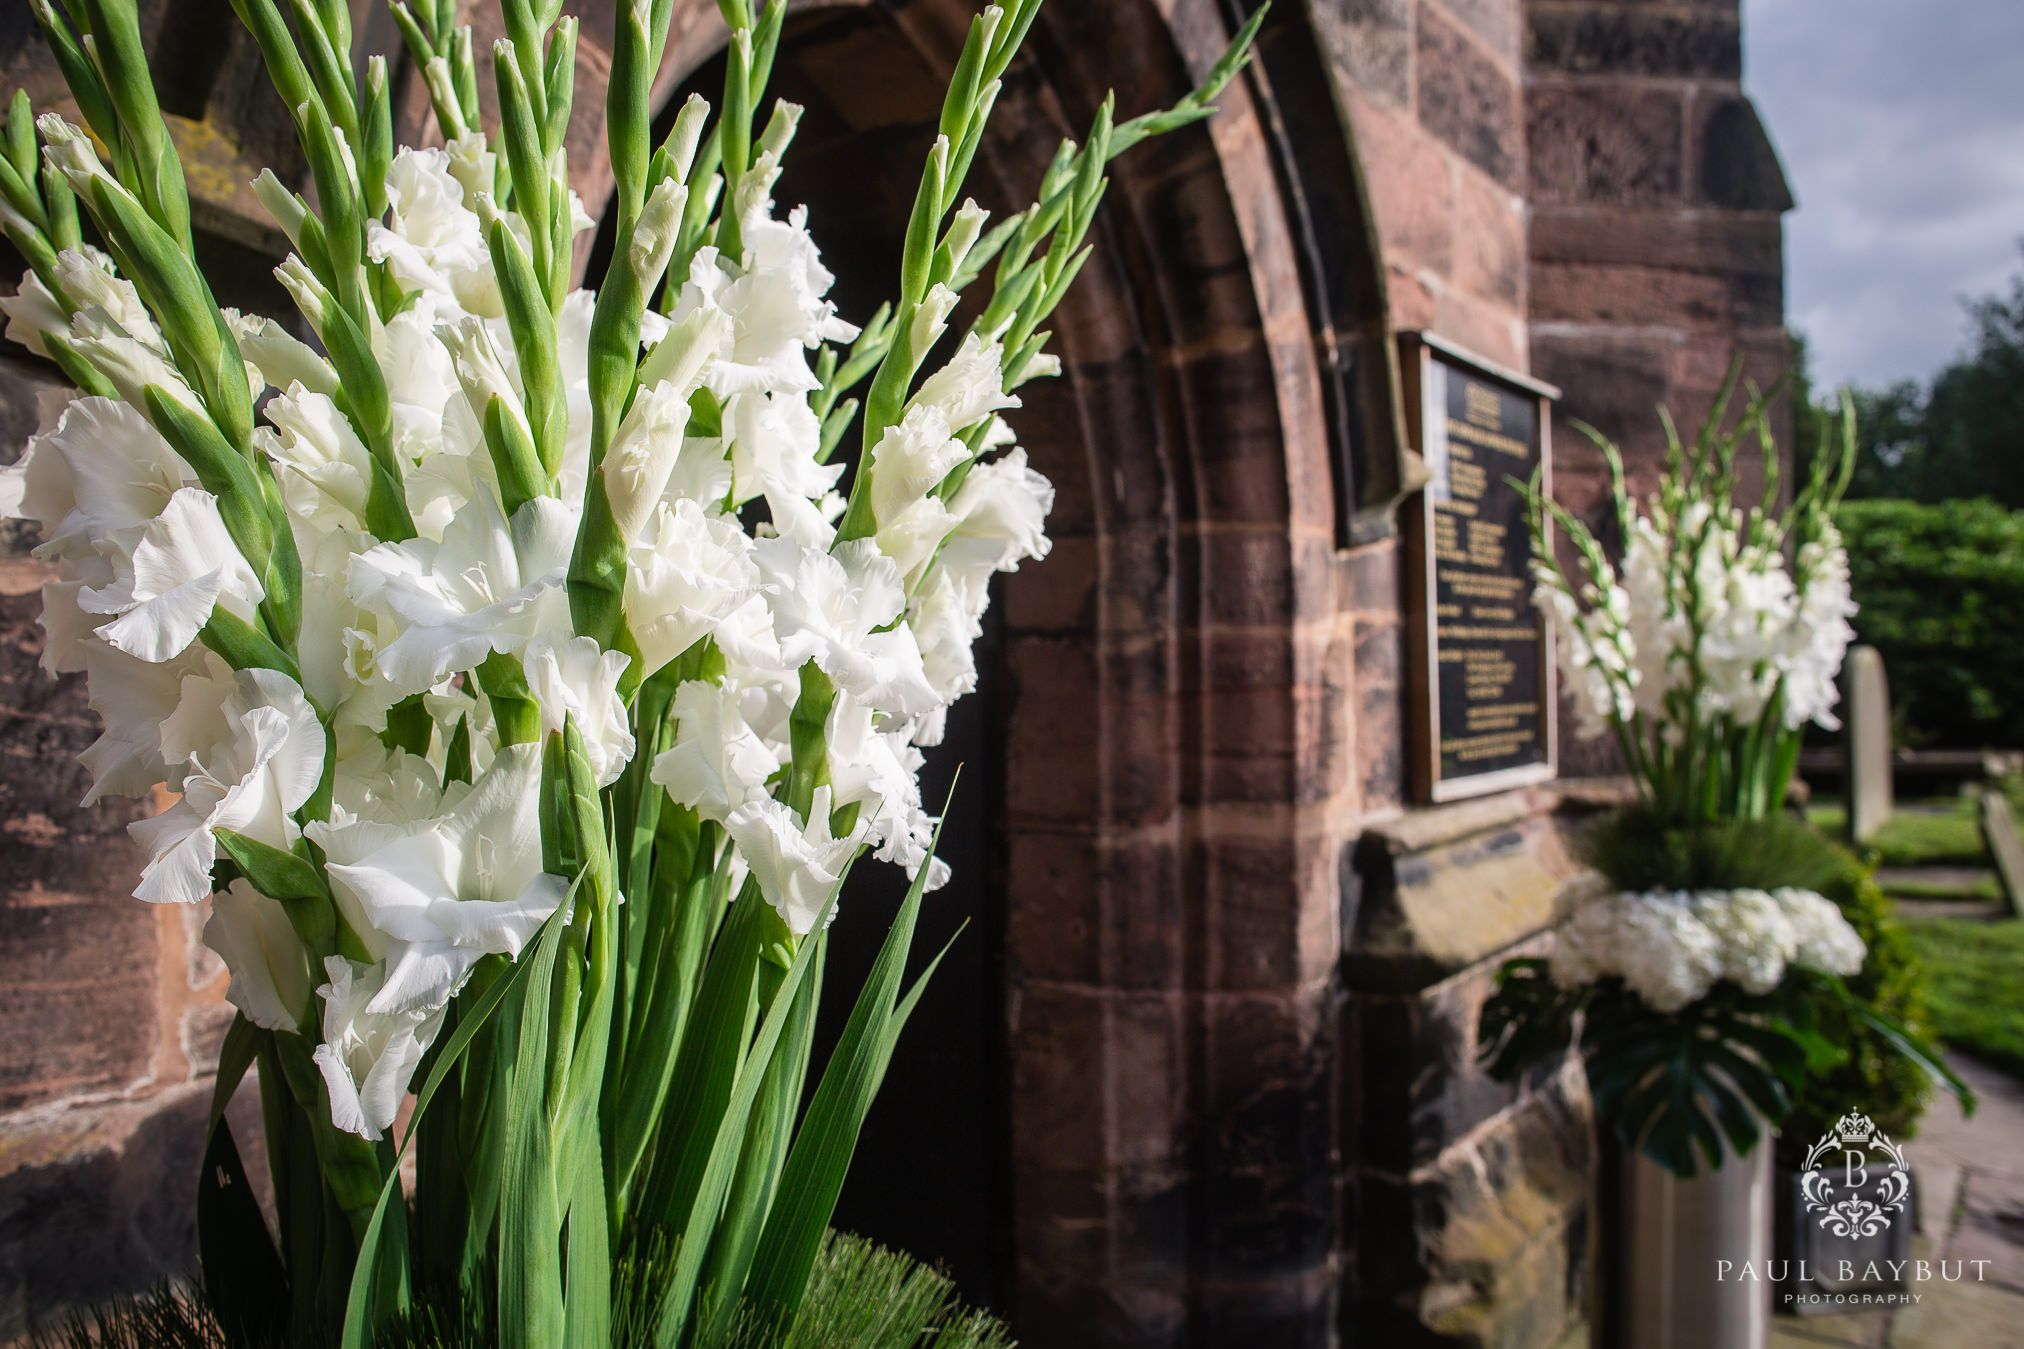 White wedding flowers outside the doors of St Oswald's church in Peover Cheshire on a sunny day